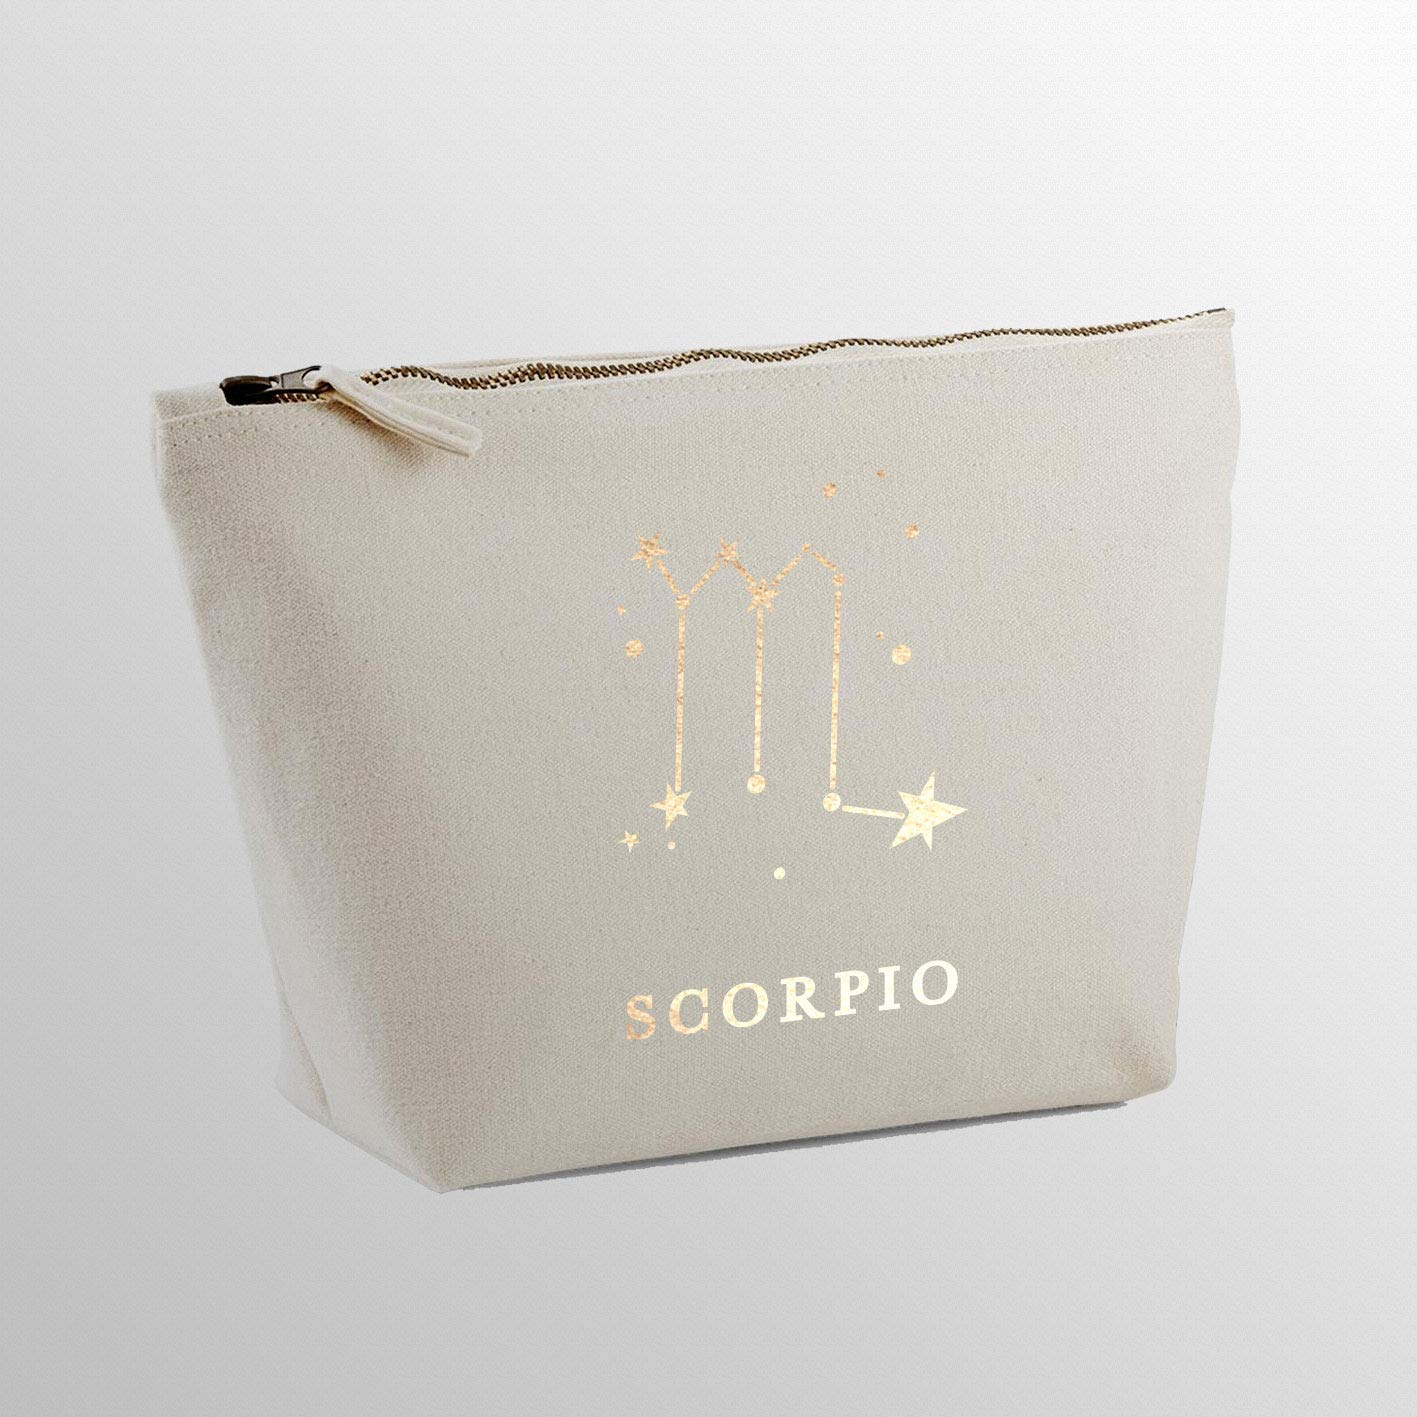 Rose Gold Name Custom Text Personalised Makeup Bags With Customized Name MakeUp Bag Make Up Bags for Women Toiletry Bag Travel Accessories Horoscope Zodiac Personalised Gifts Scorpio Star Sign